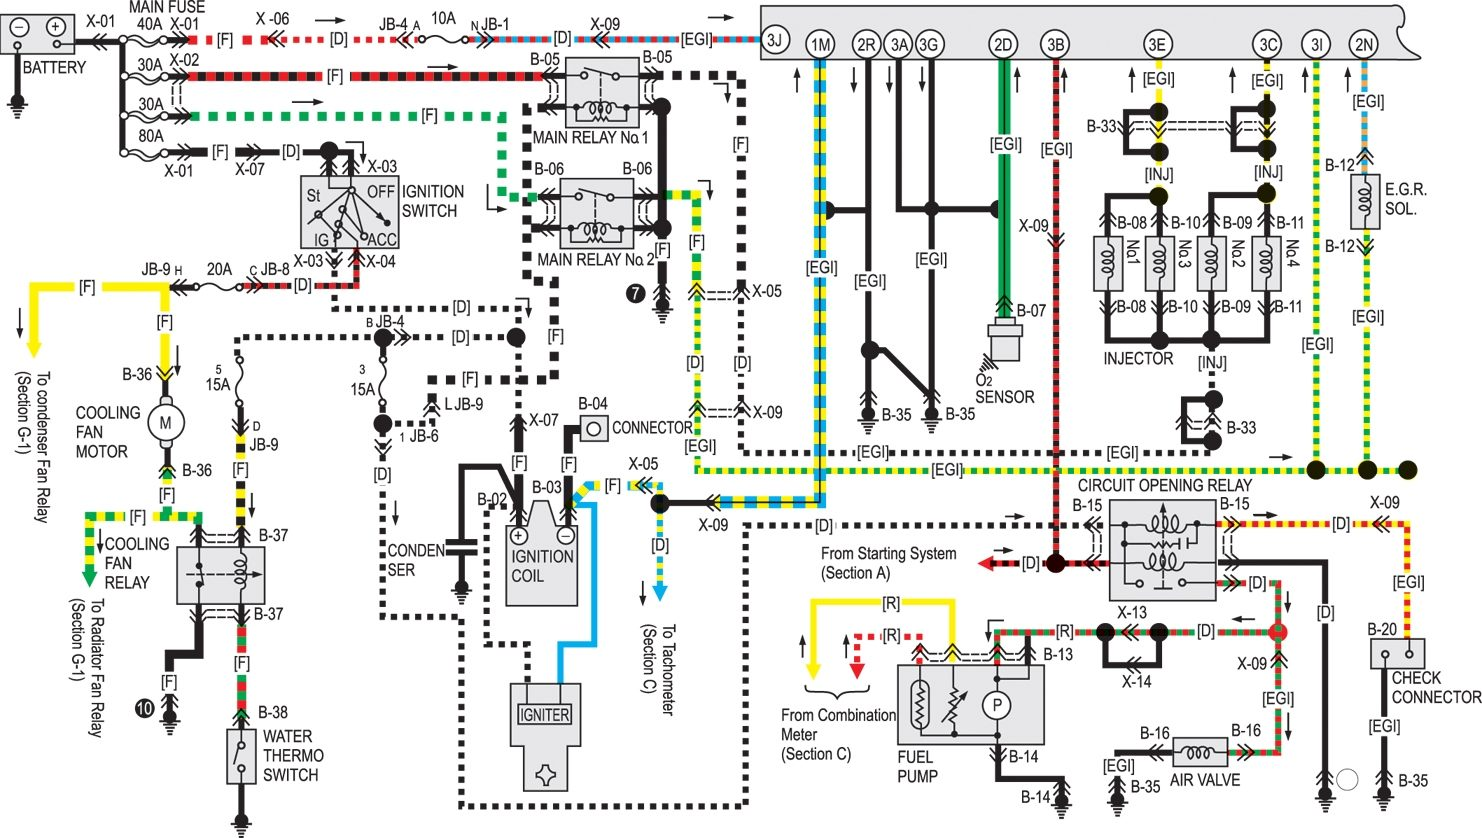 mazda 323 wiring diagram free download wiring diagram for light rh prestonfarmmotors co 1993 Mazda Miata Wheels 1993 Miata Radio Wiring Diagram